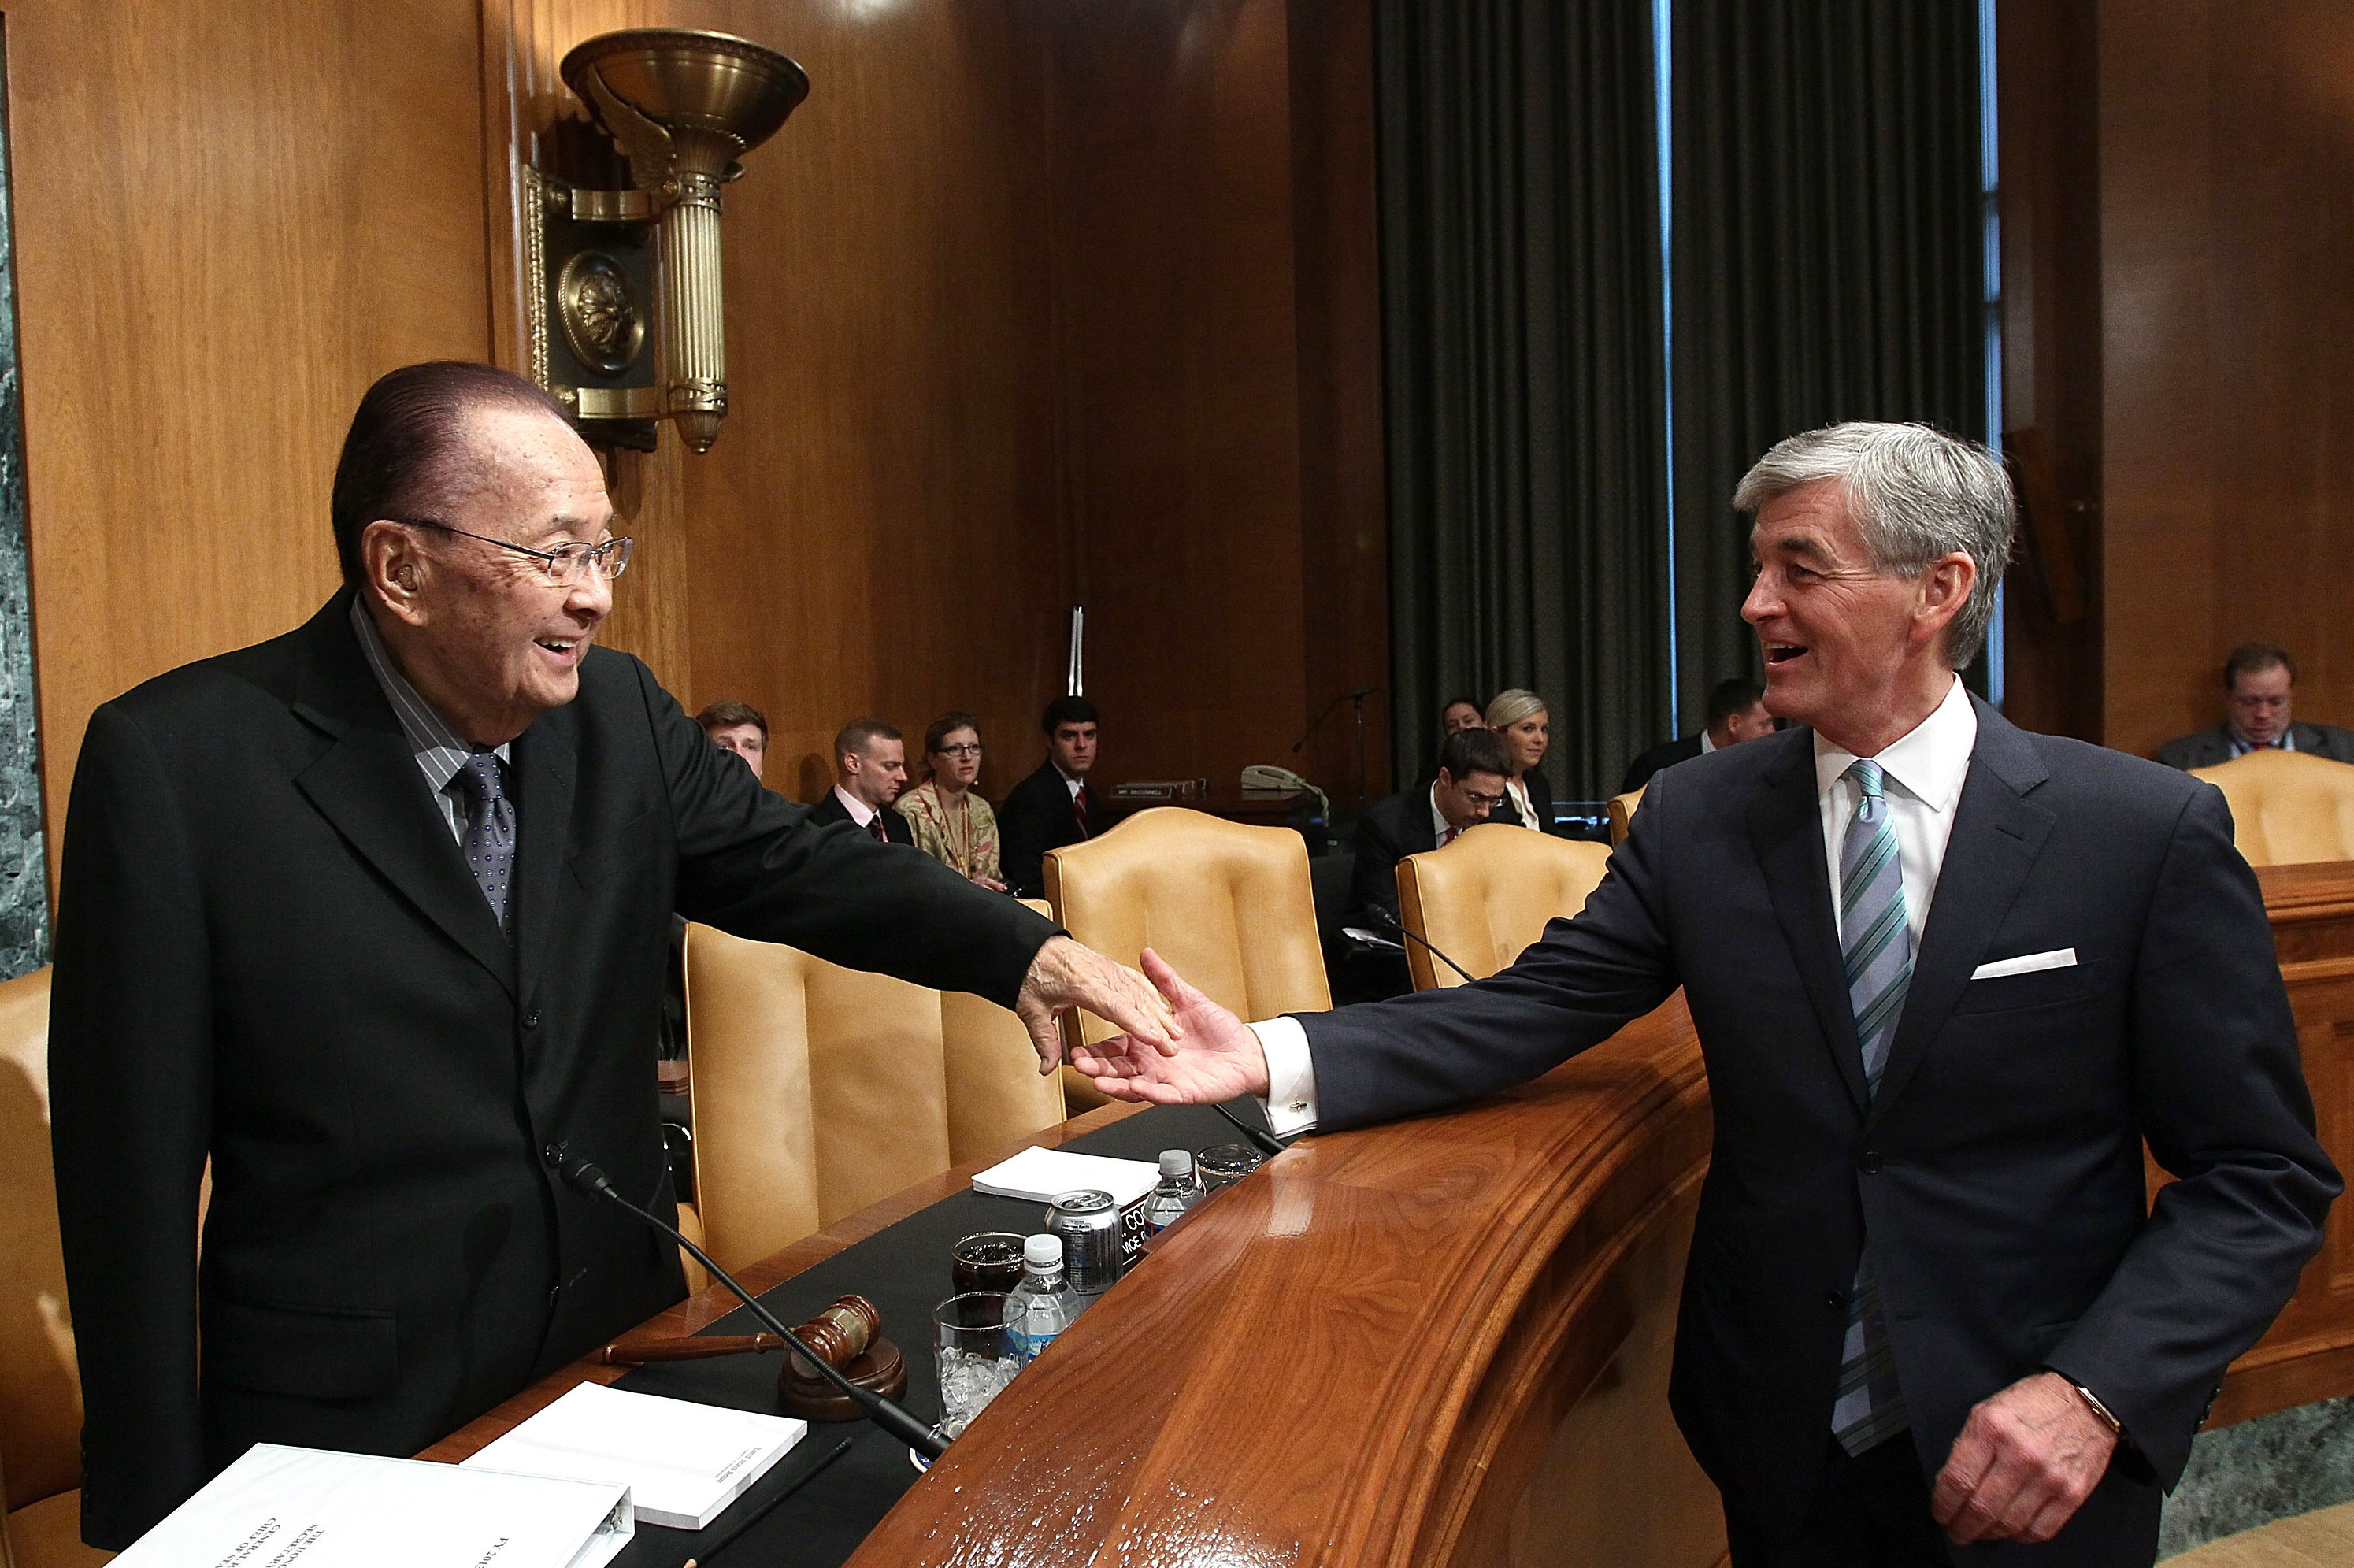 Secretary of the Army John McHugh greets Inouye before a hearing of the Senate Appropriations Committee March 21 in Washington, D.C.